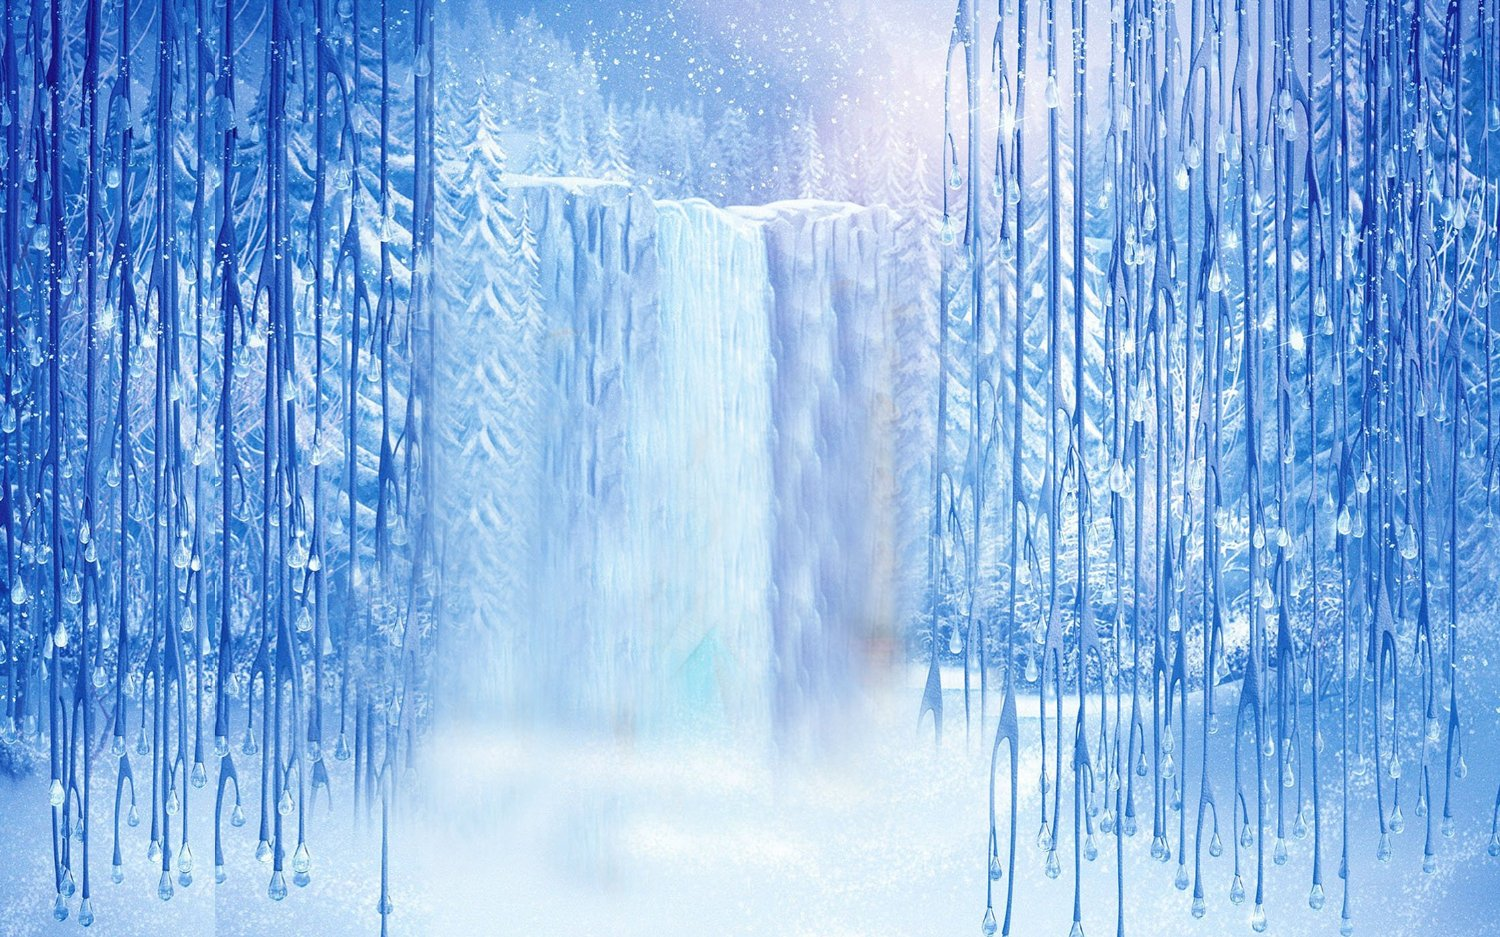 9x6ft WINTER WATERFALL BACKDROP